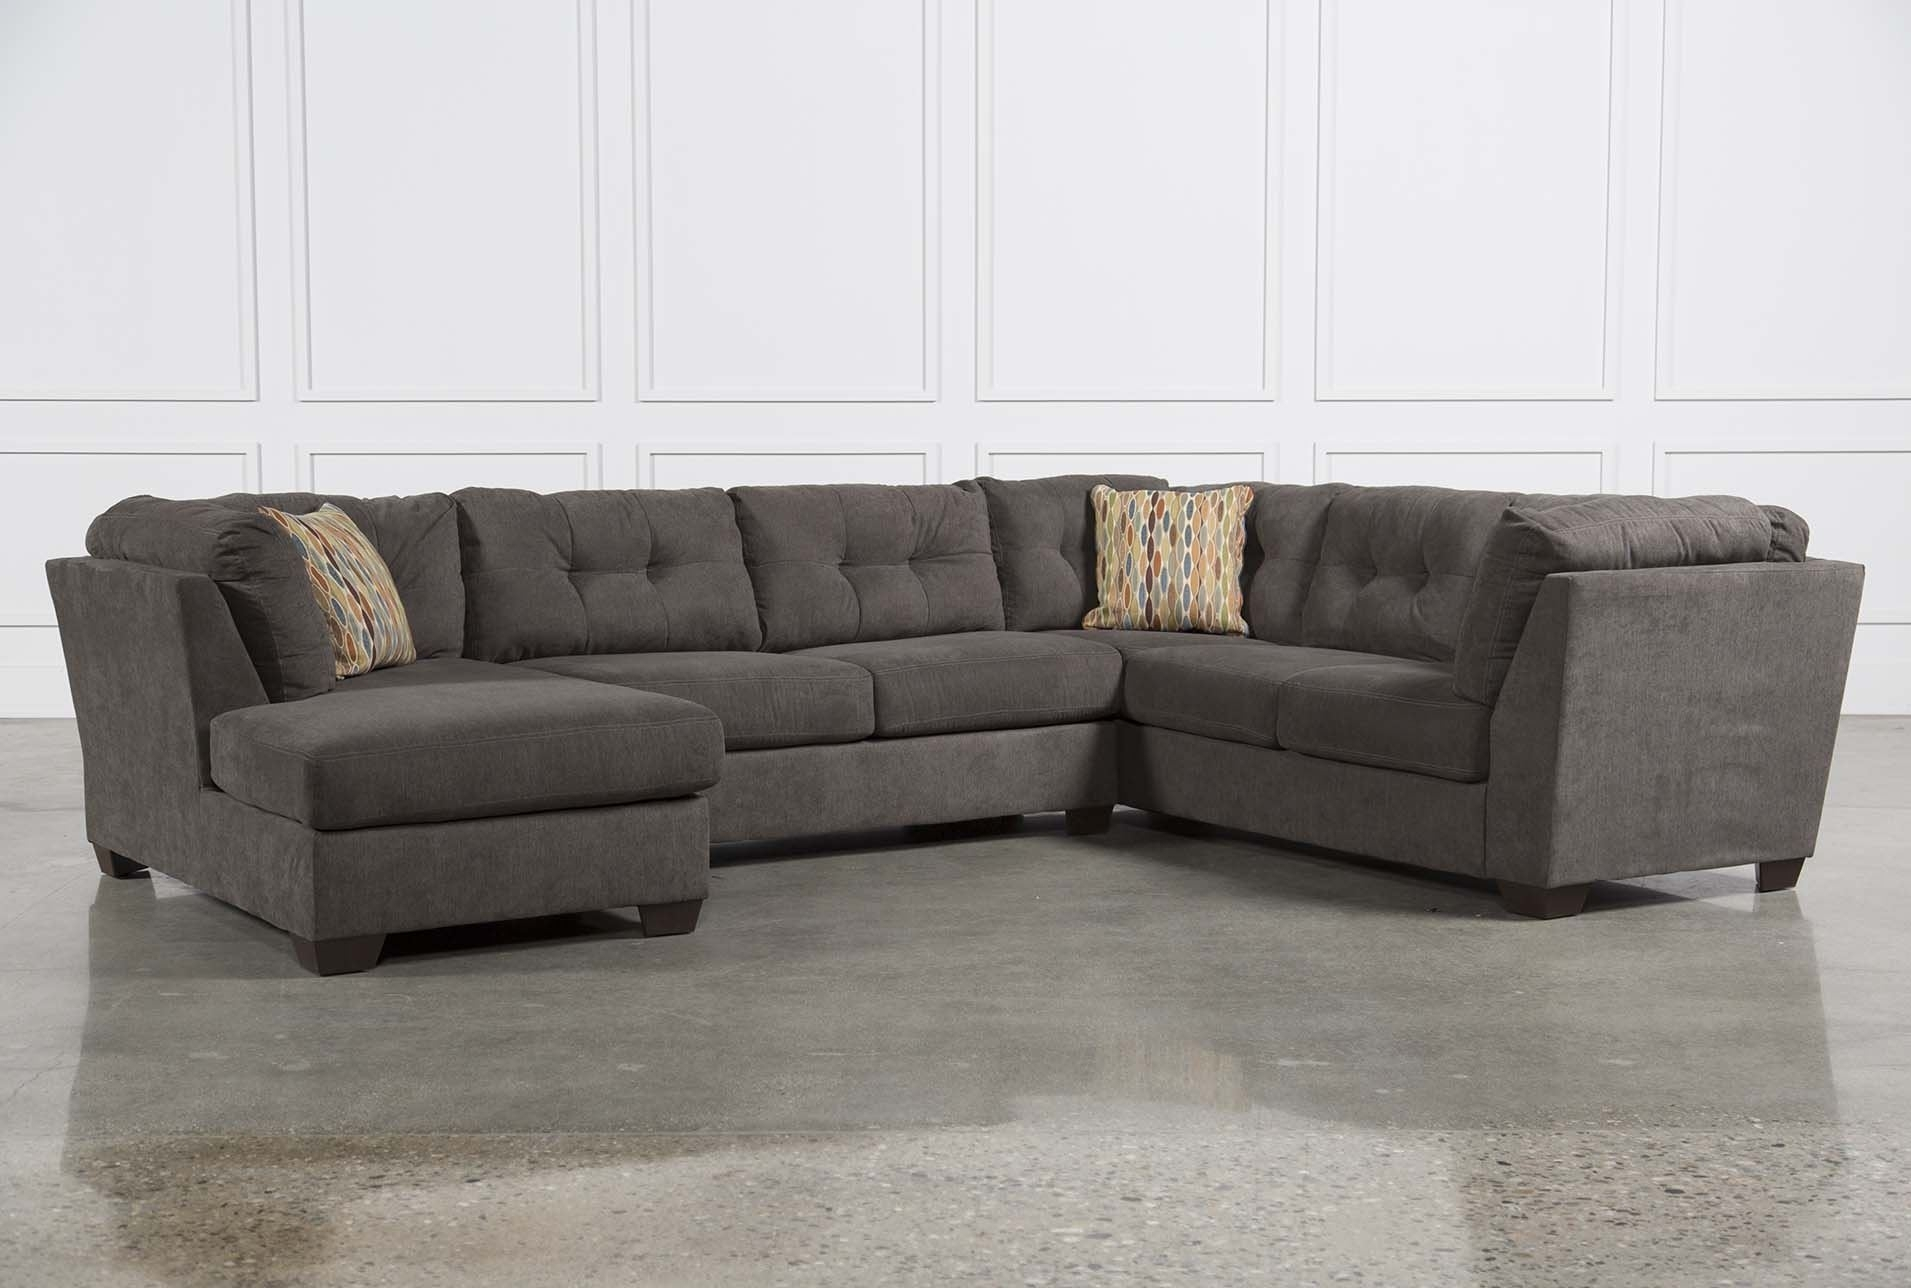 Enchanting Sofa Sectionals For Sale 74 In Sectional Sofas Seattle Pertaining To Seattle Sectional Sofas (Photo 9 of 10)